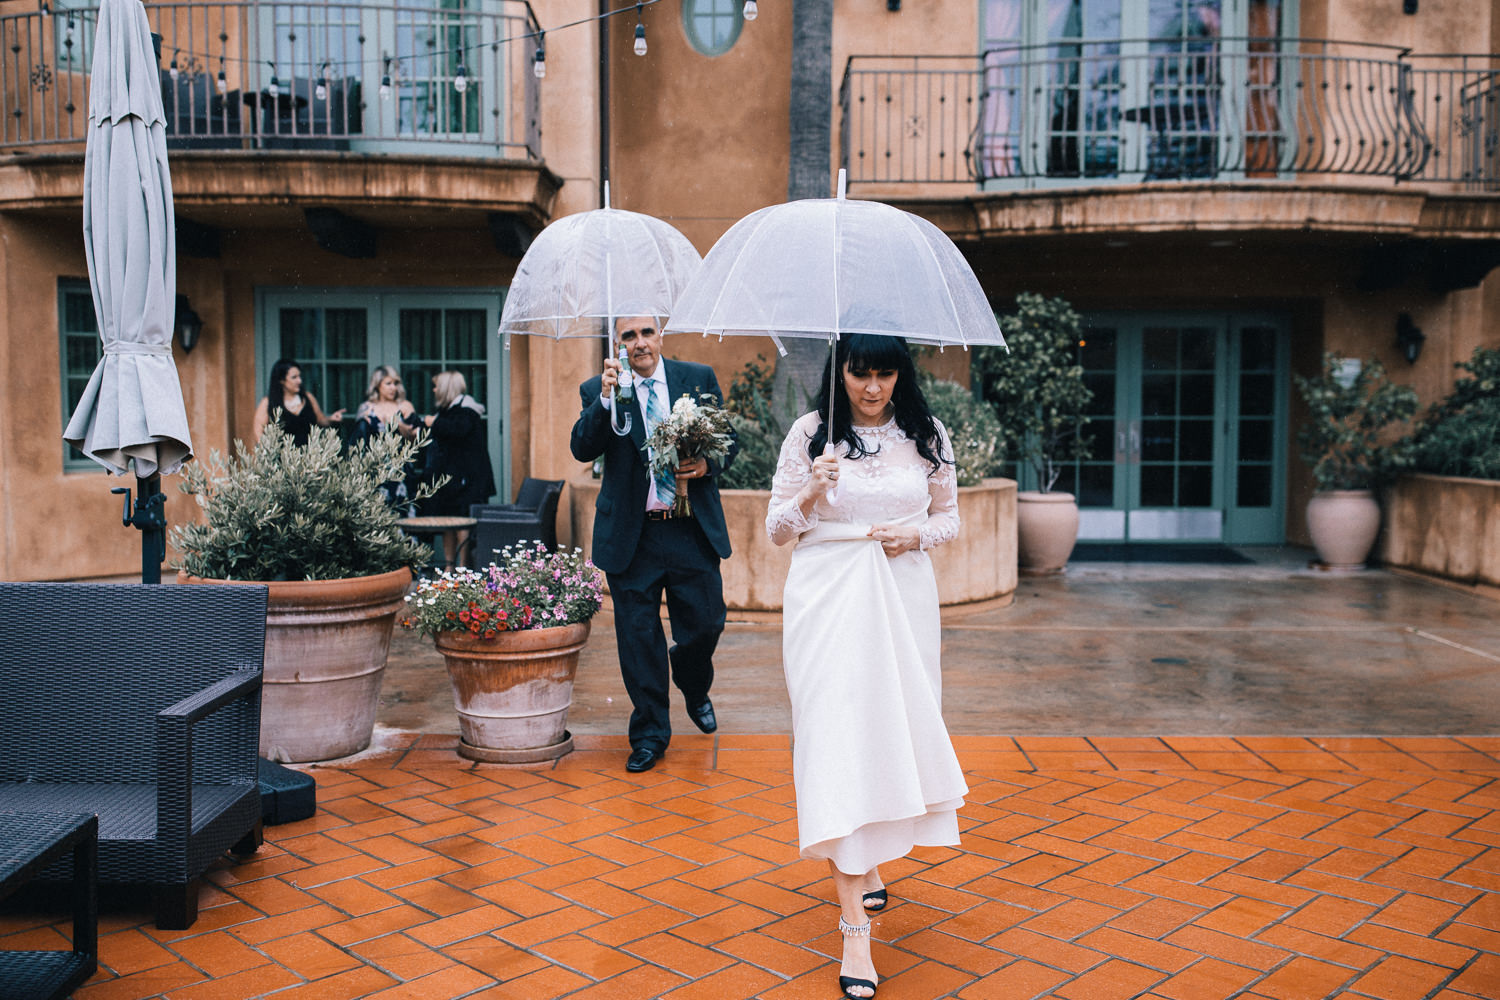 2019_05_ 182019.05.19 Lisa + Eddie South Bay Wedding Blog Photos Edited For Web 0056.jpg